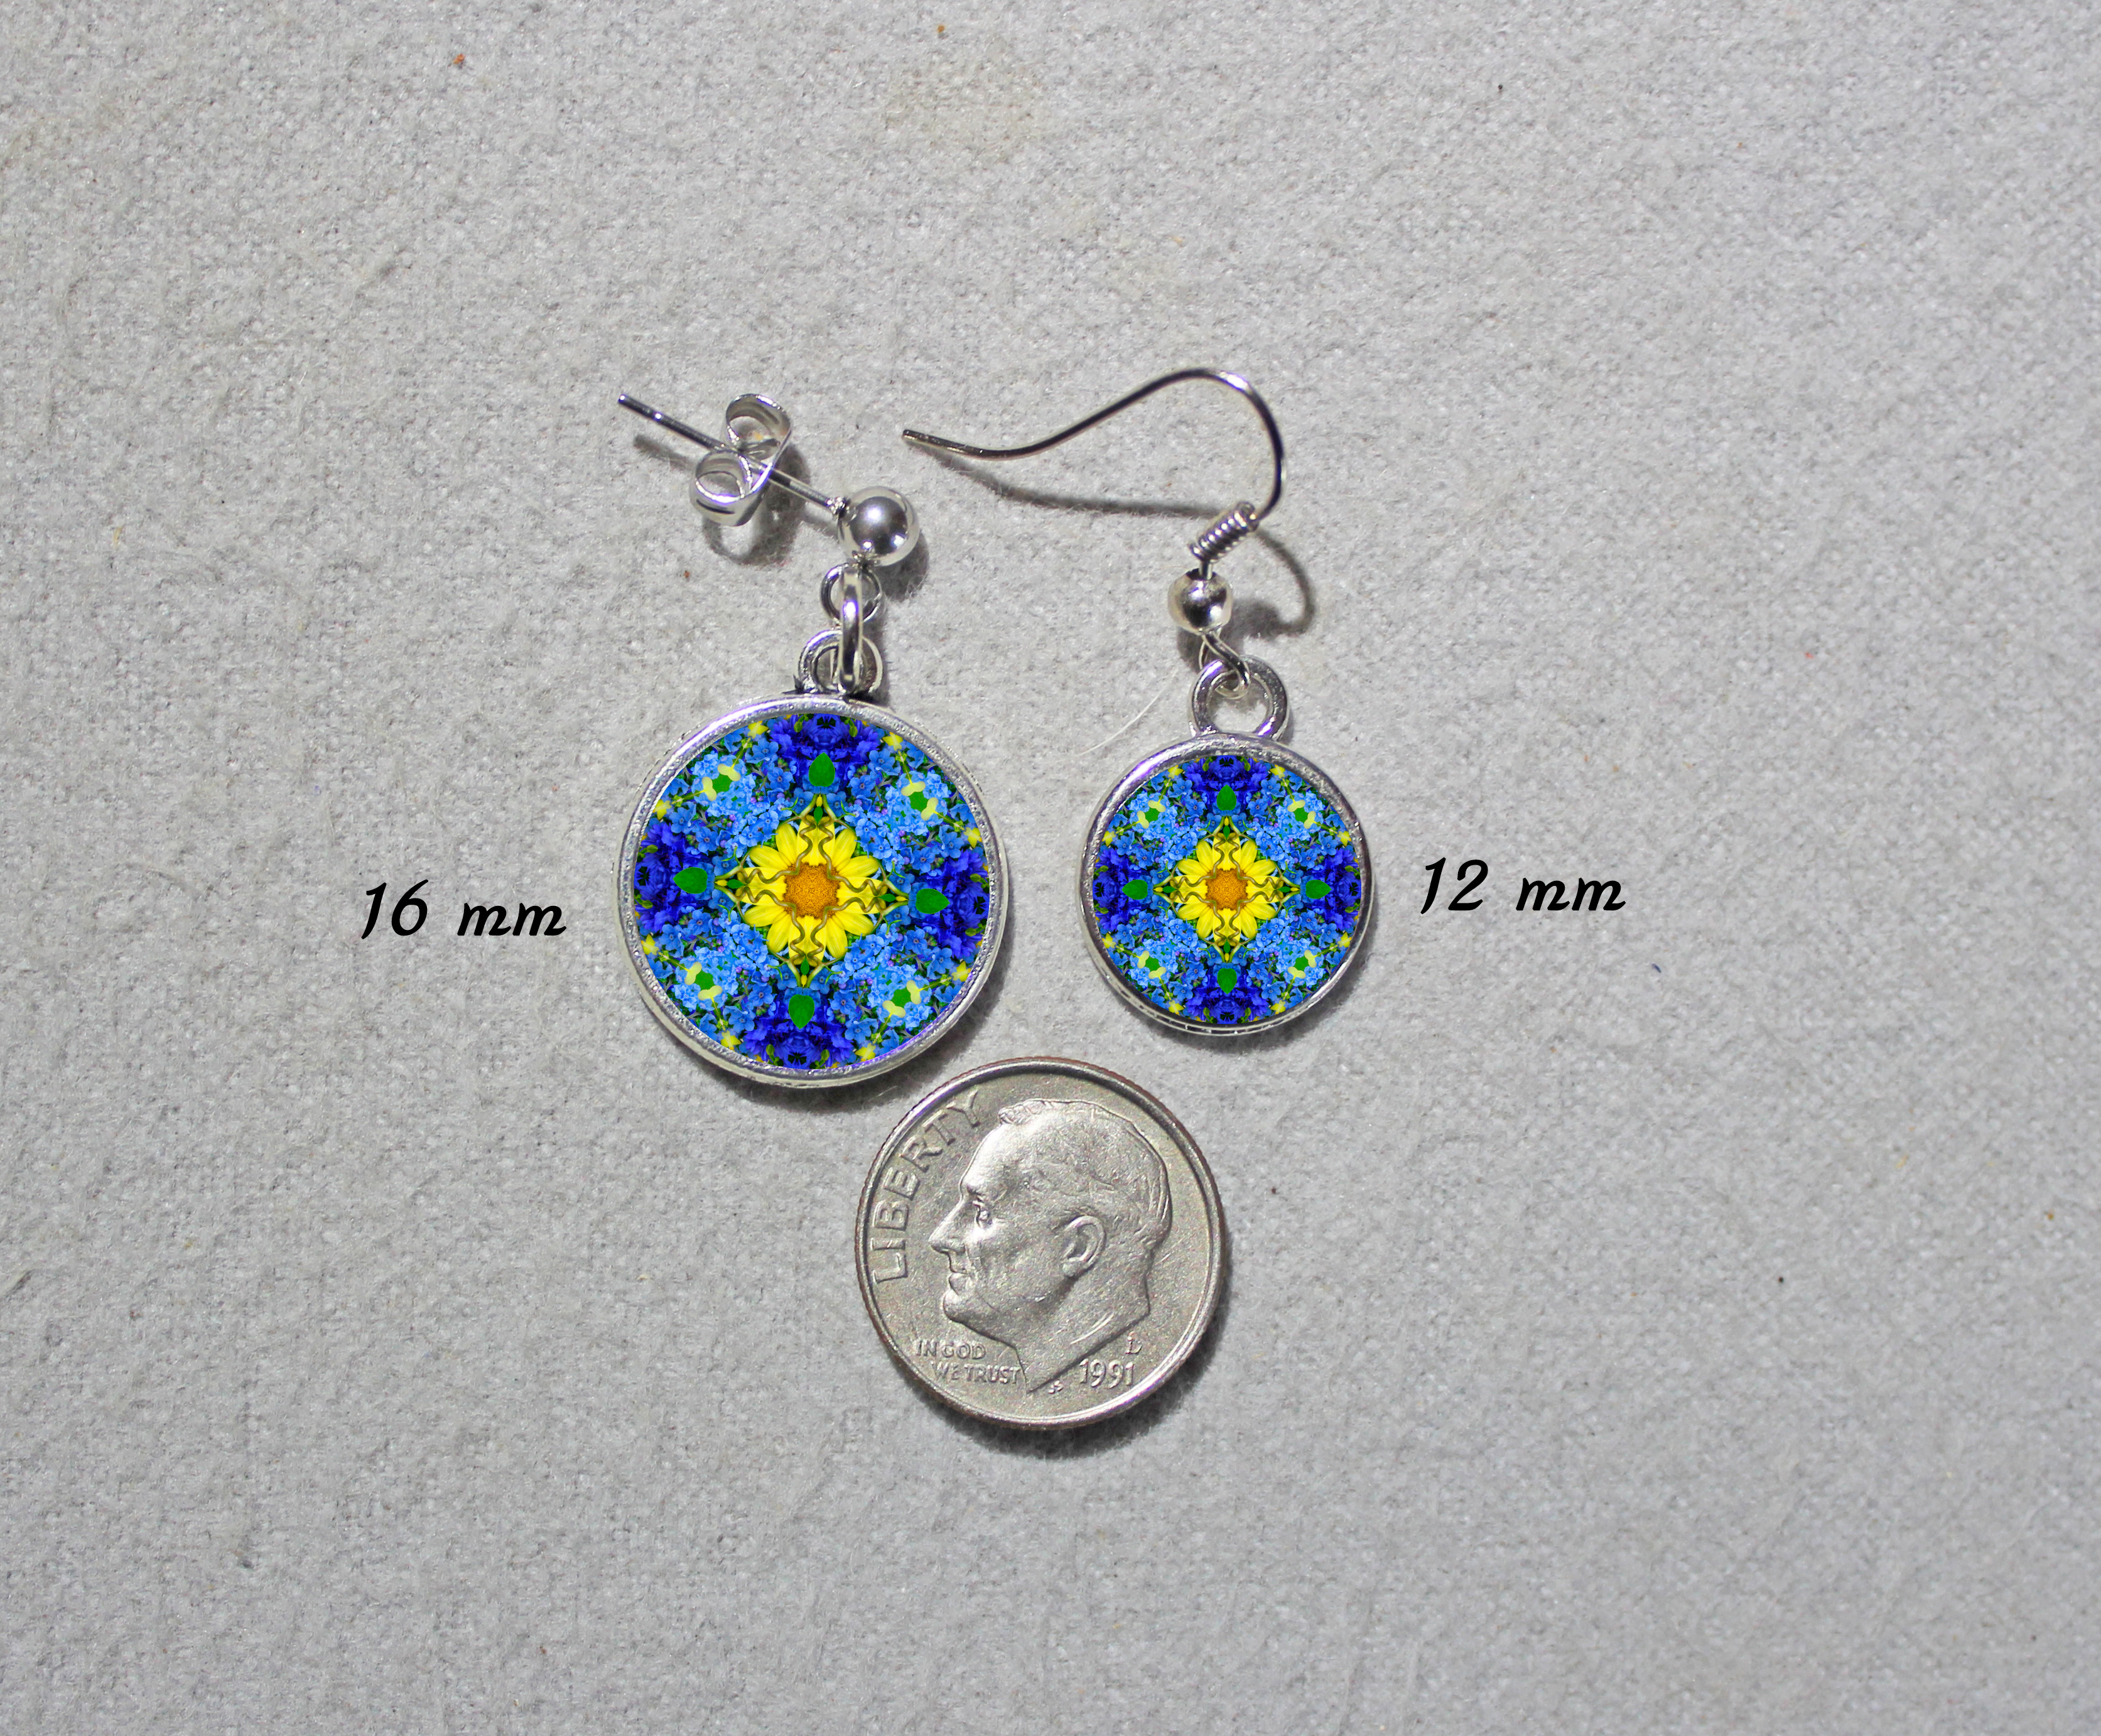 Earrings Dainty Tiny Double Sided Dangle Forget Me Not Mandala Unforgettable